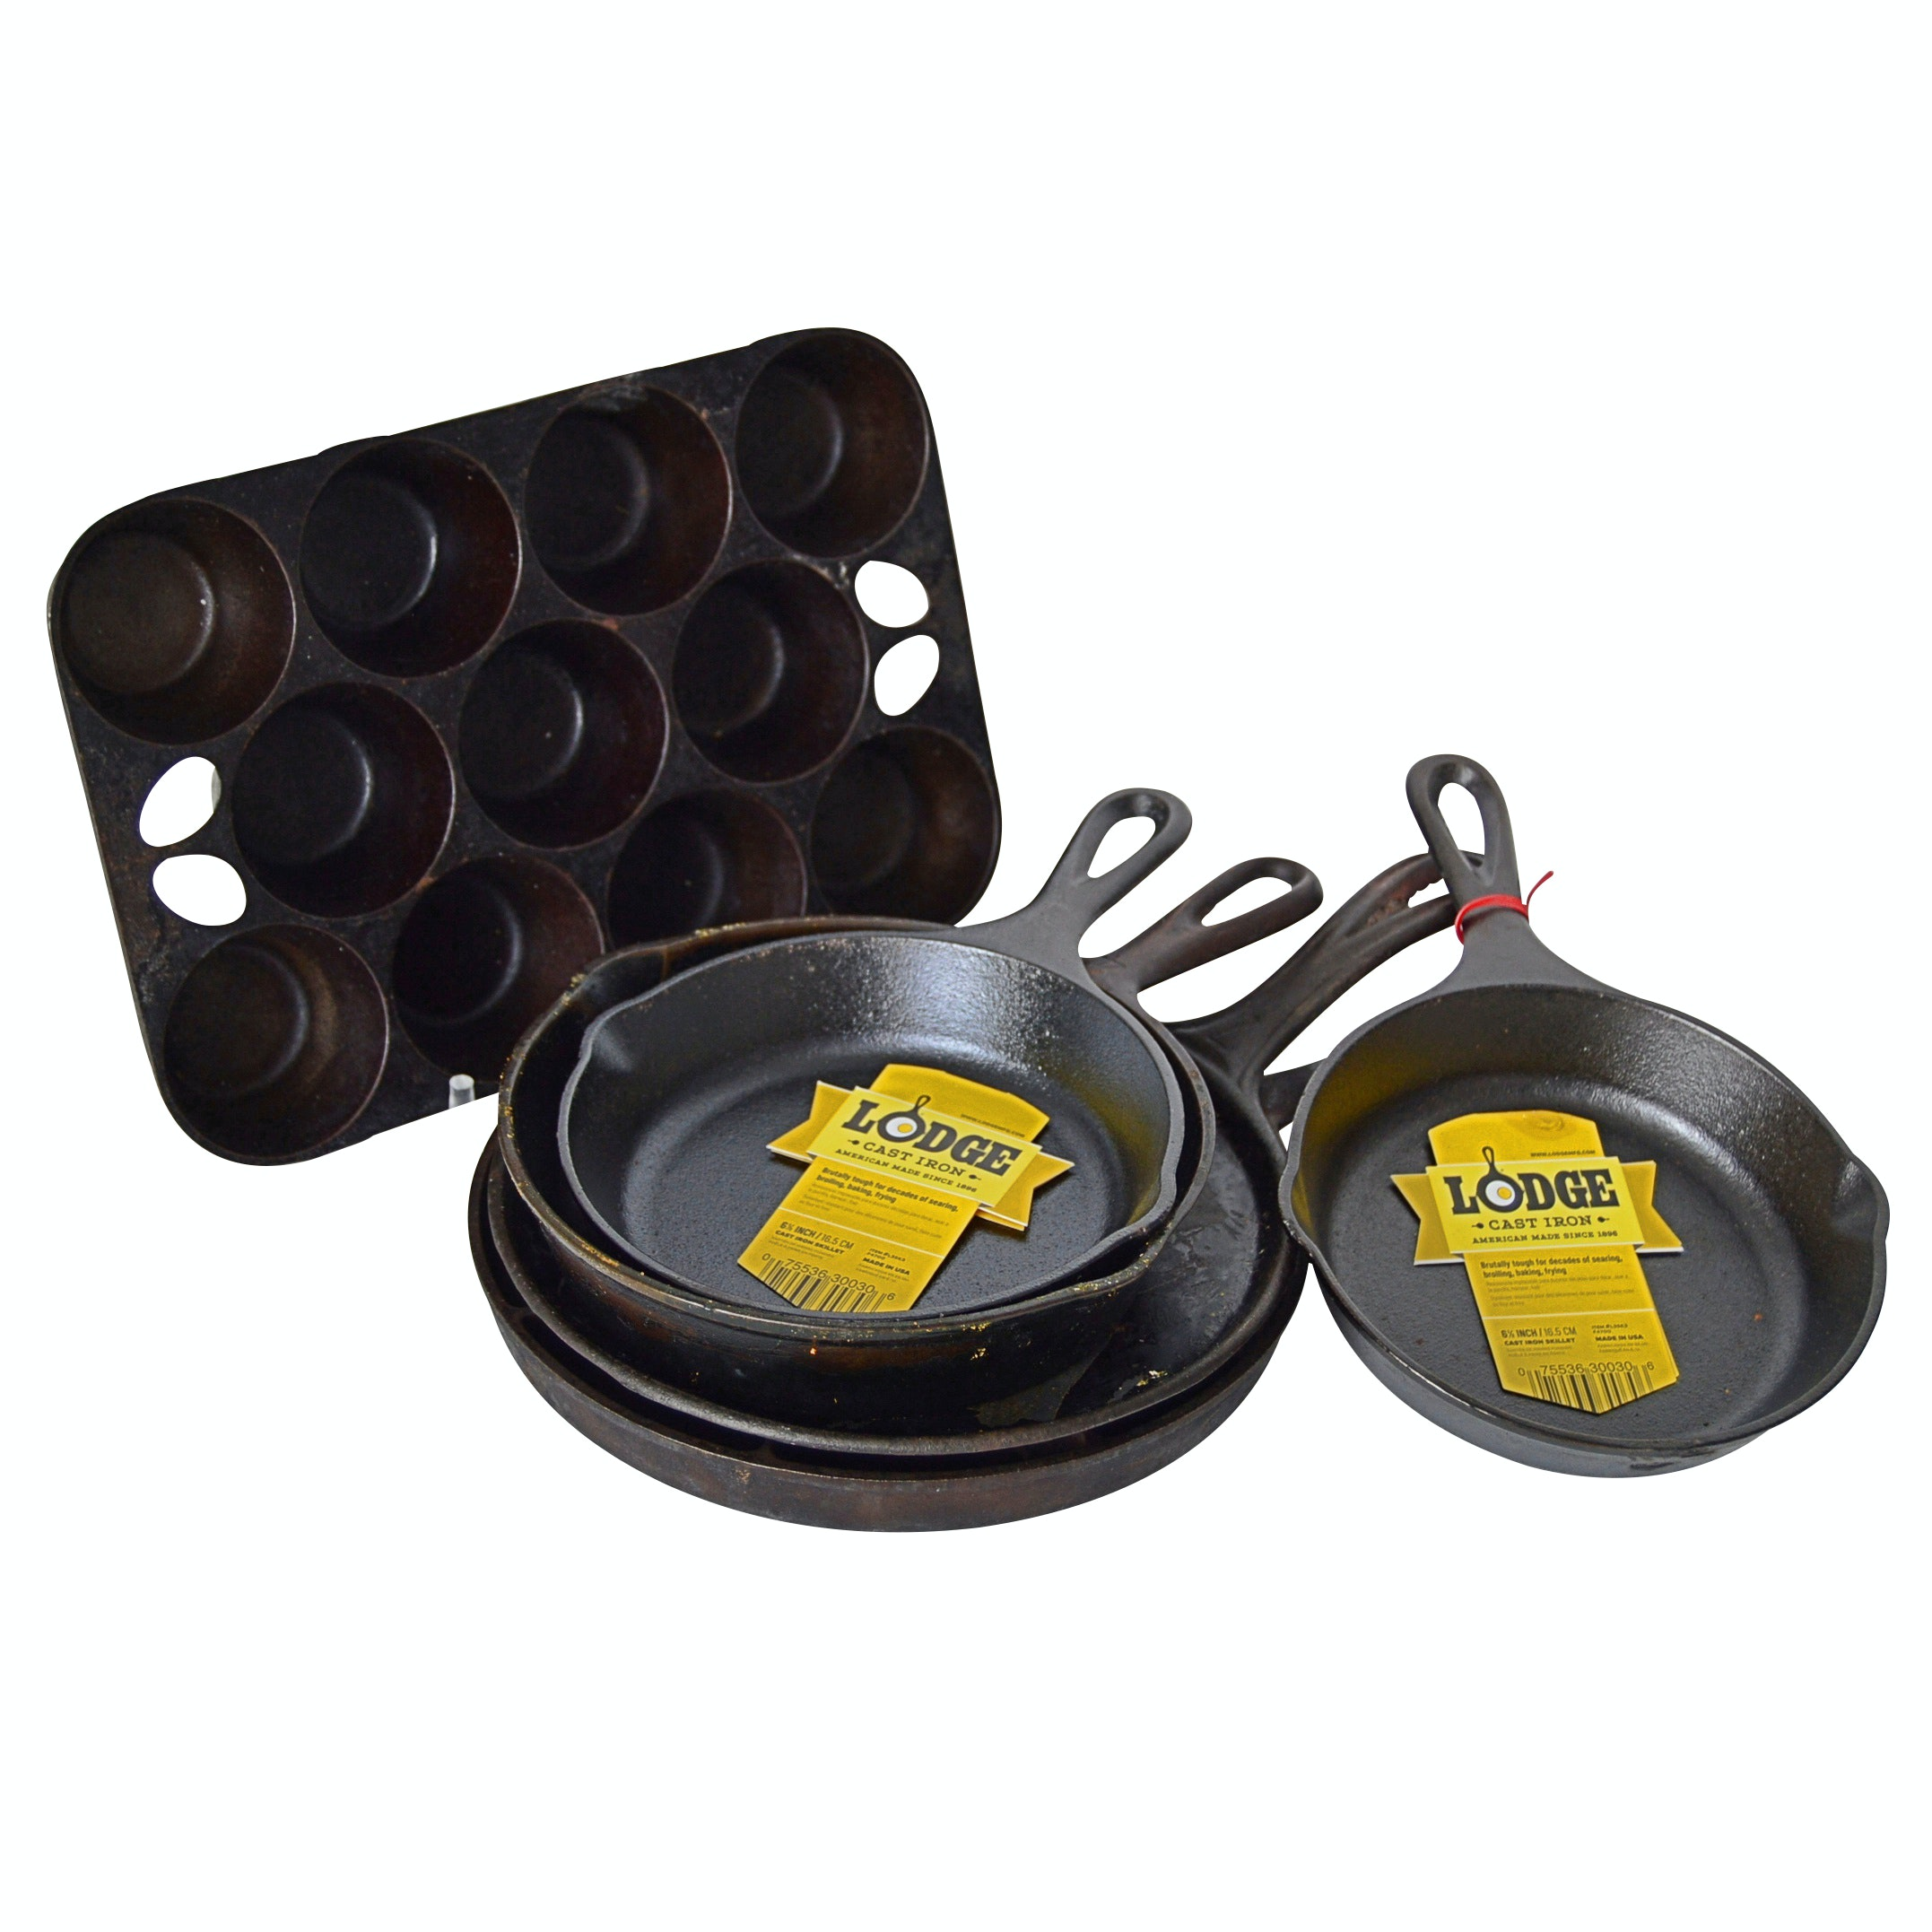 Cast Iron Skillets and Bakeware with Pair of NWT Lodge, Griswold Muffin Pan